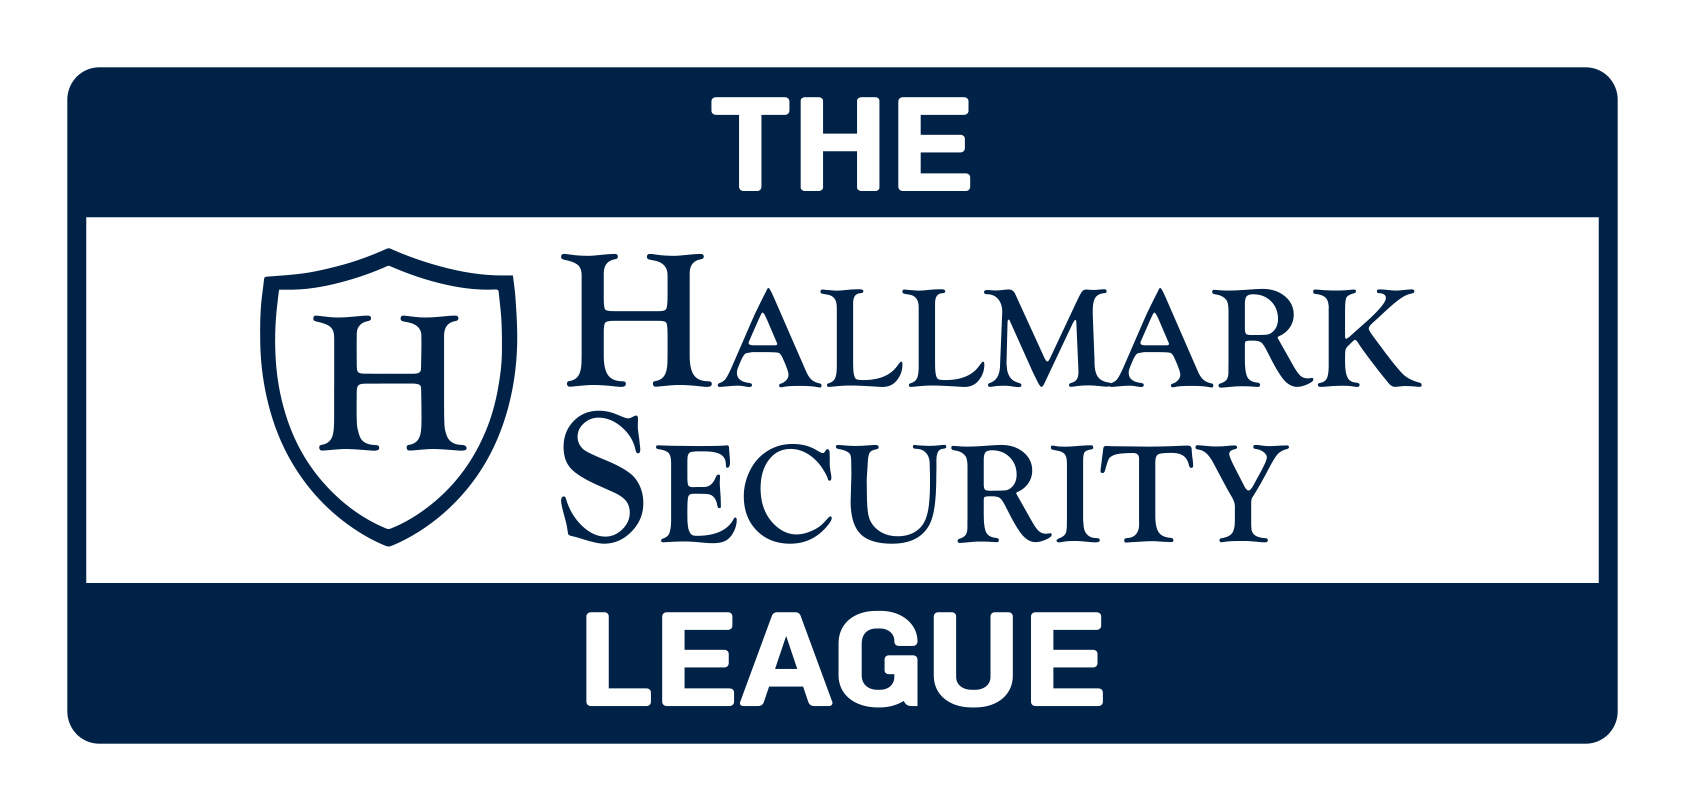 The Hallmark Security League